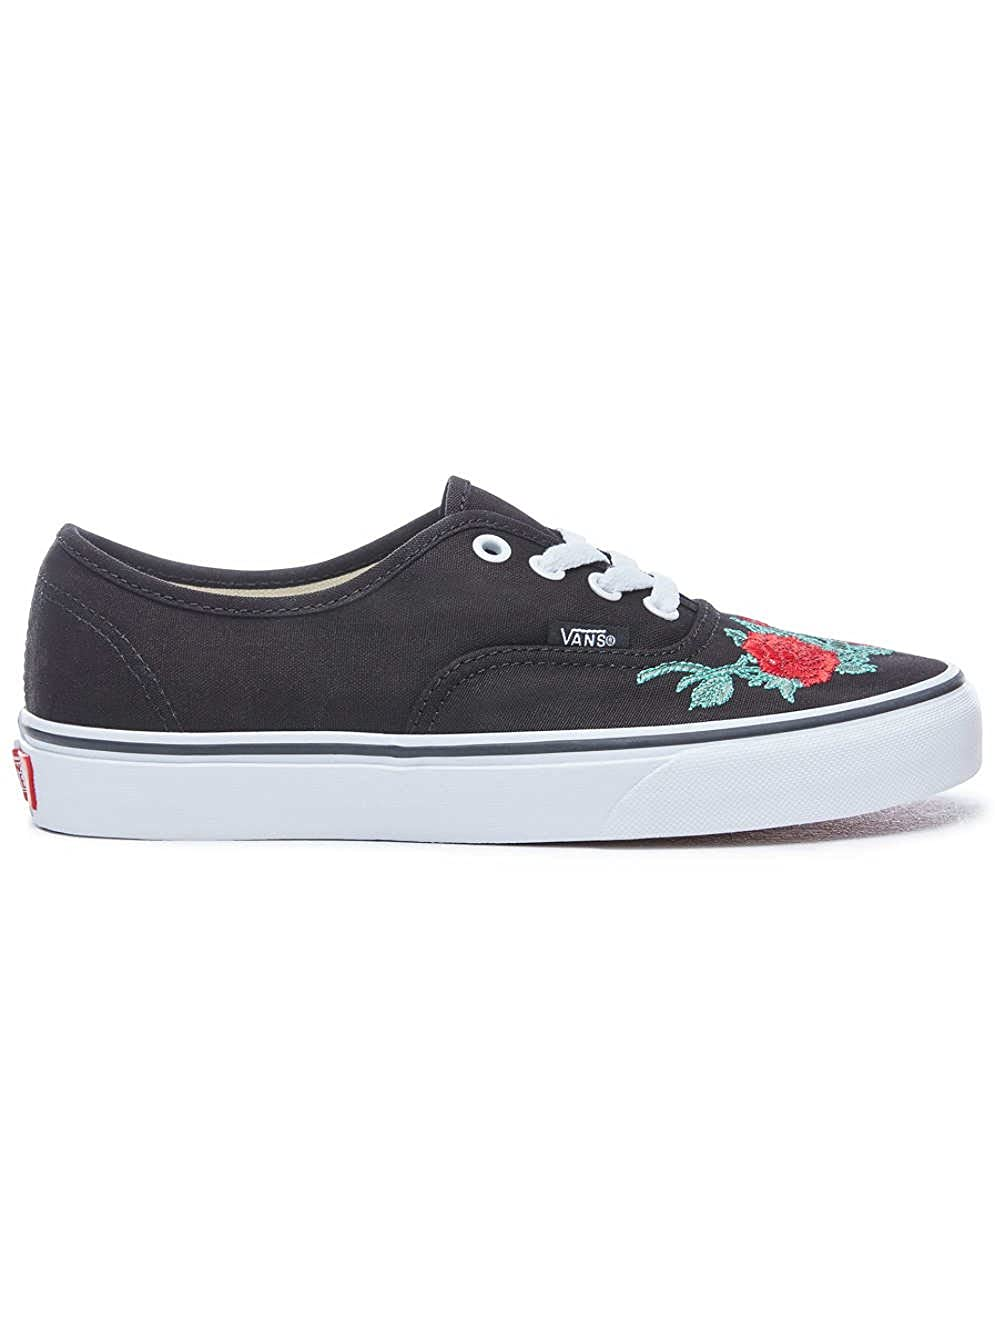 Rose Authentic Men co Vans SneakersAmazon Sneaker Thorns LGMUVqpSz